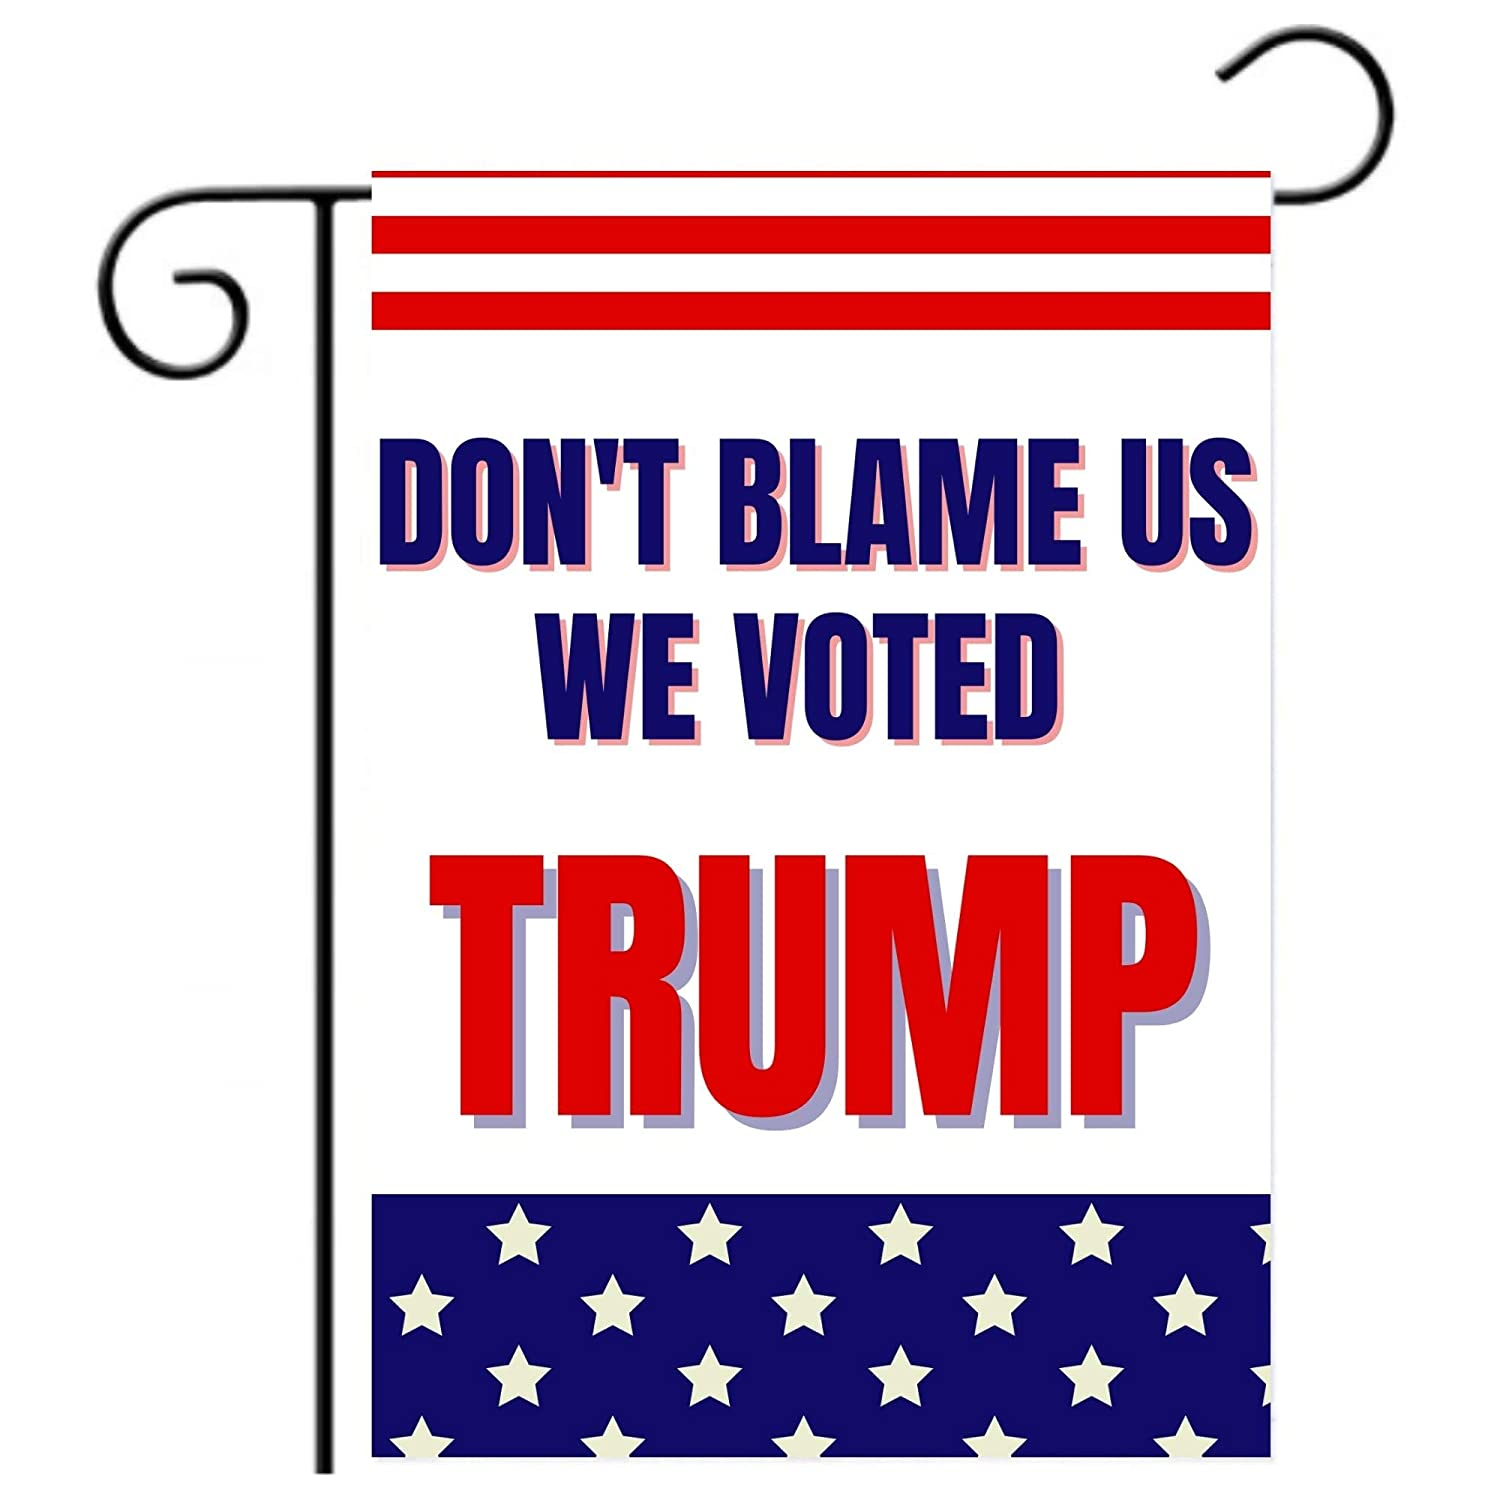 Anti Biden Outdoor Garden Flag | Don't Blame Us We Voted Trump Funny 12x18 Double-Sided Flag Banner for Lawn and Garden | White with American Flag Colors